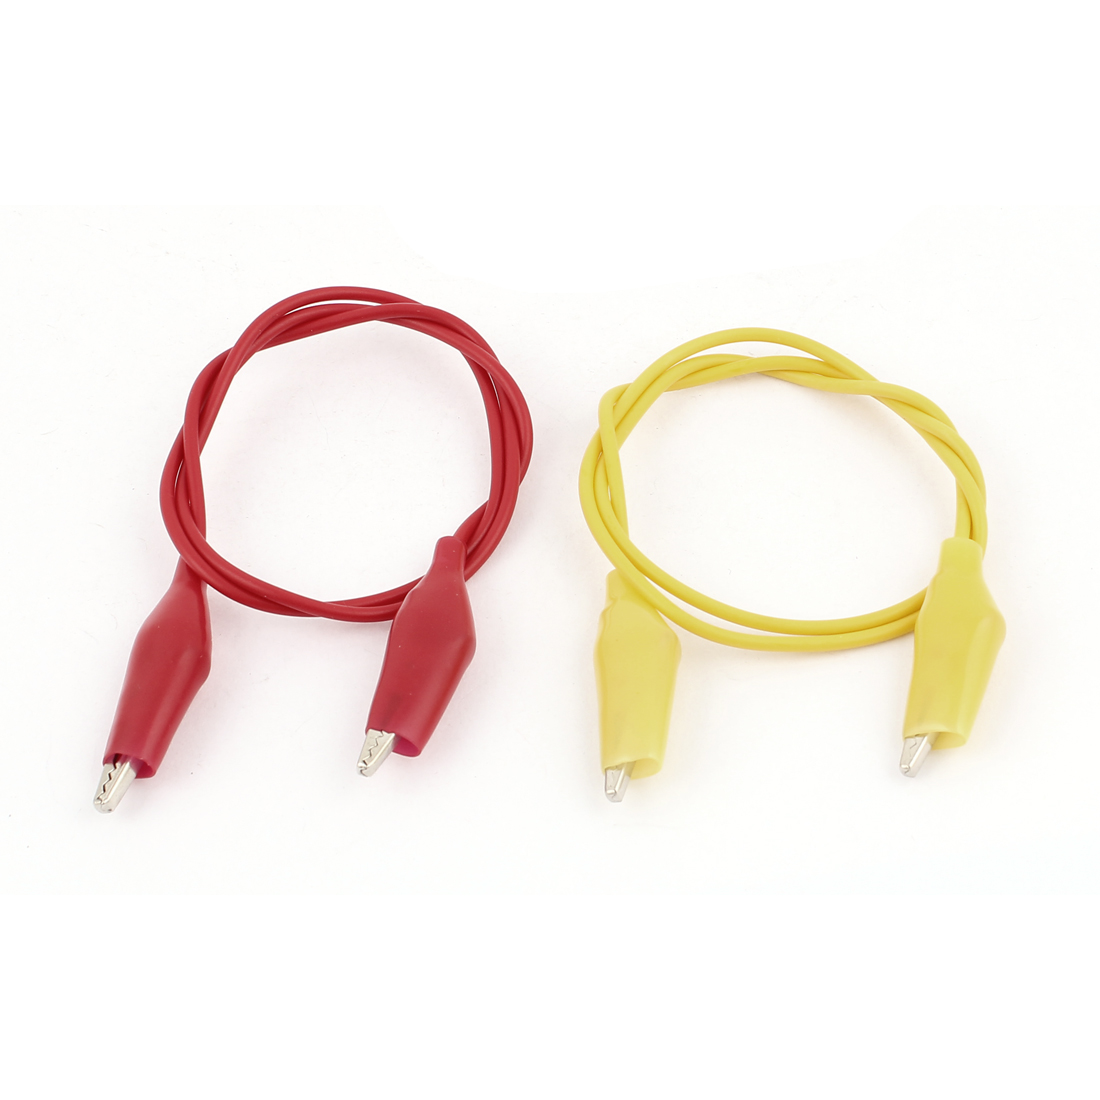 2pcs Red Yellow Dual Ended Alligator Roach Clip Test Leads Jumper Probe Cable Wire 47cm